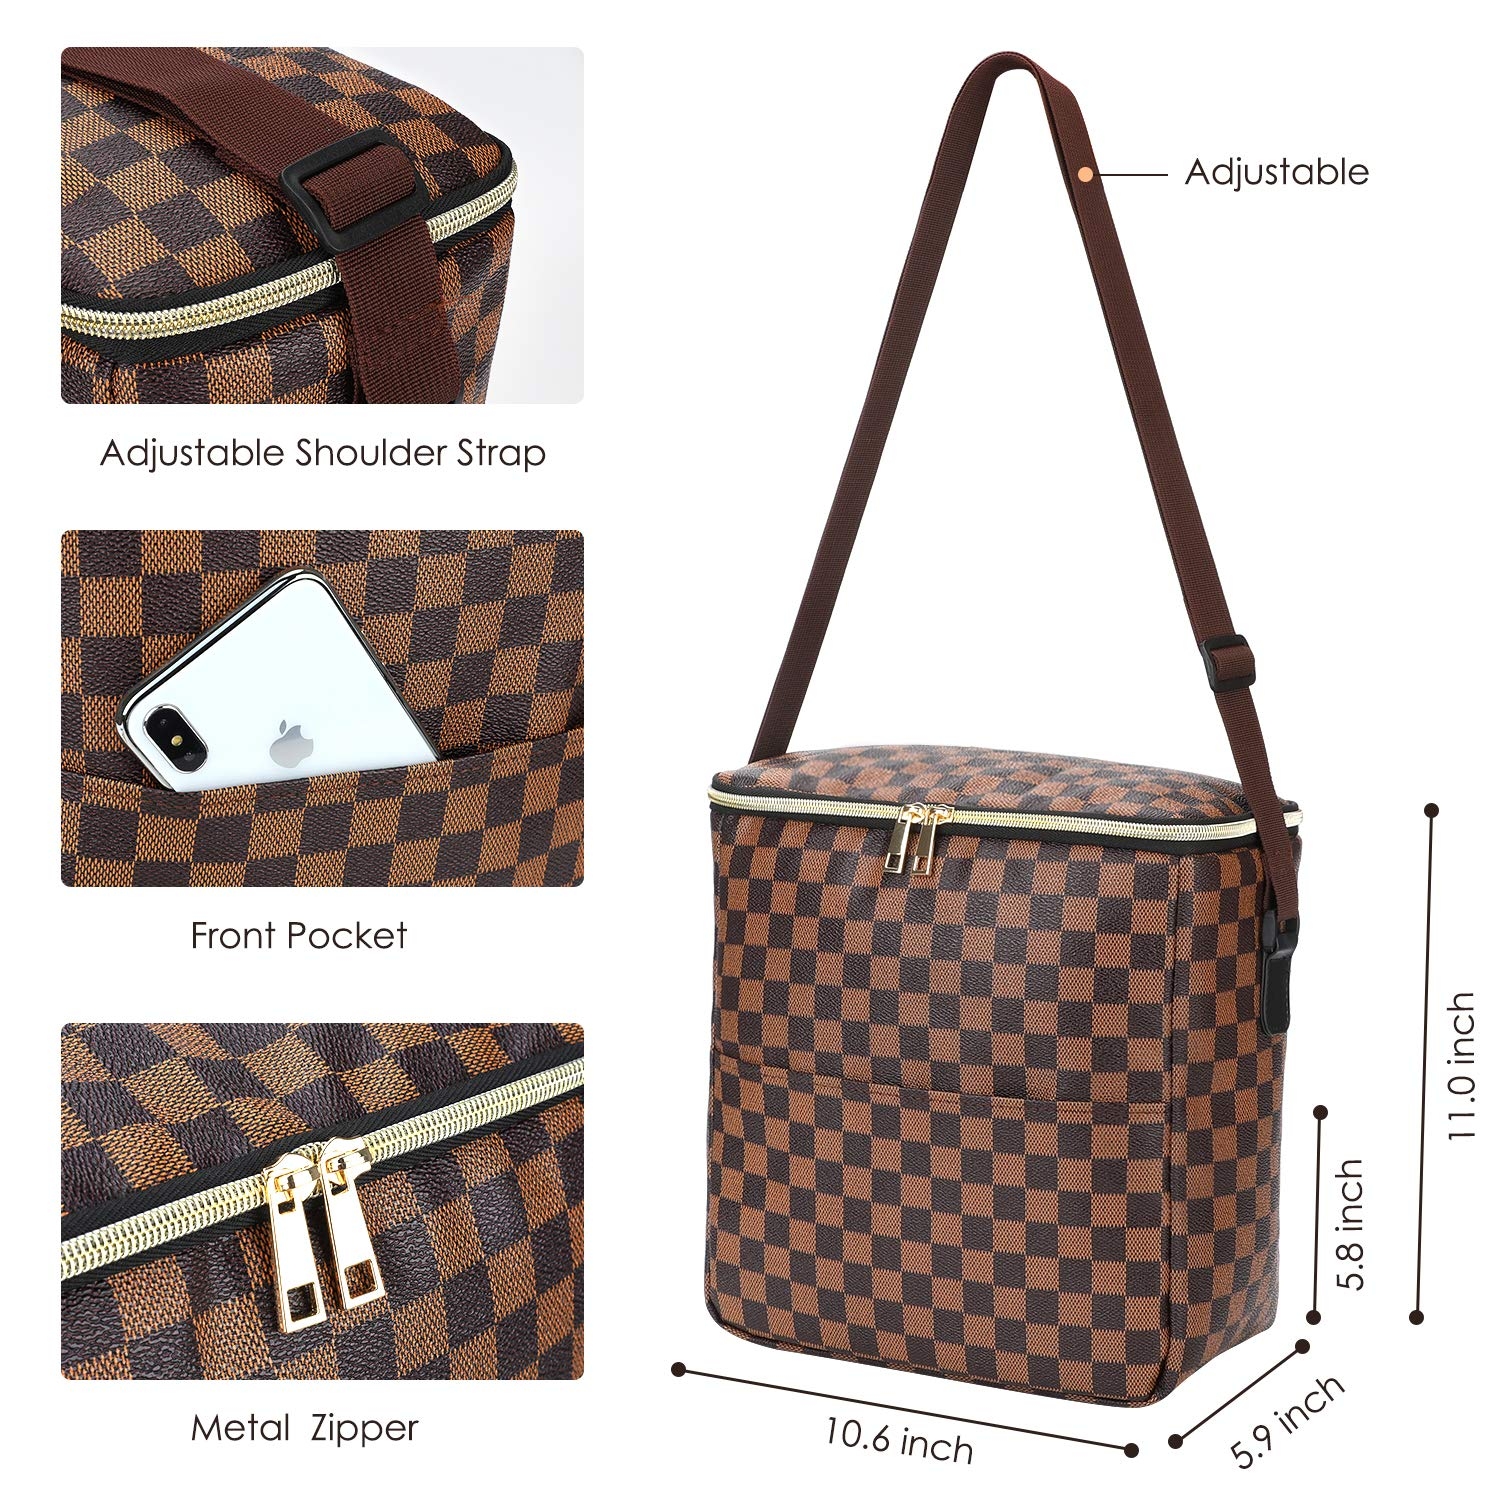 Checked Pattern Lunch Bags For Women and Man,Insulated Lunch Box Cooler Bag with Adjustable Shoulder Strap Water-resistant Thermal PU Soft leather Lunch Shoulder Bag for Work//Picnic//Beach//Hiking